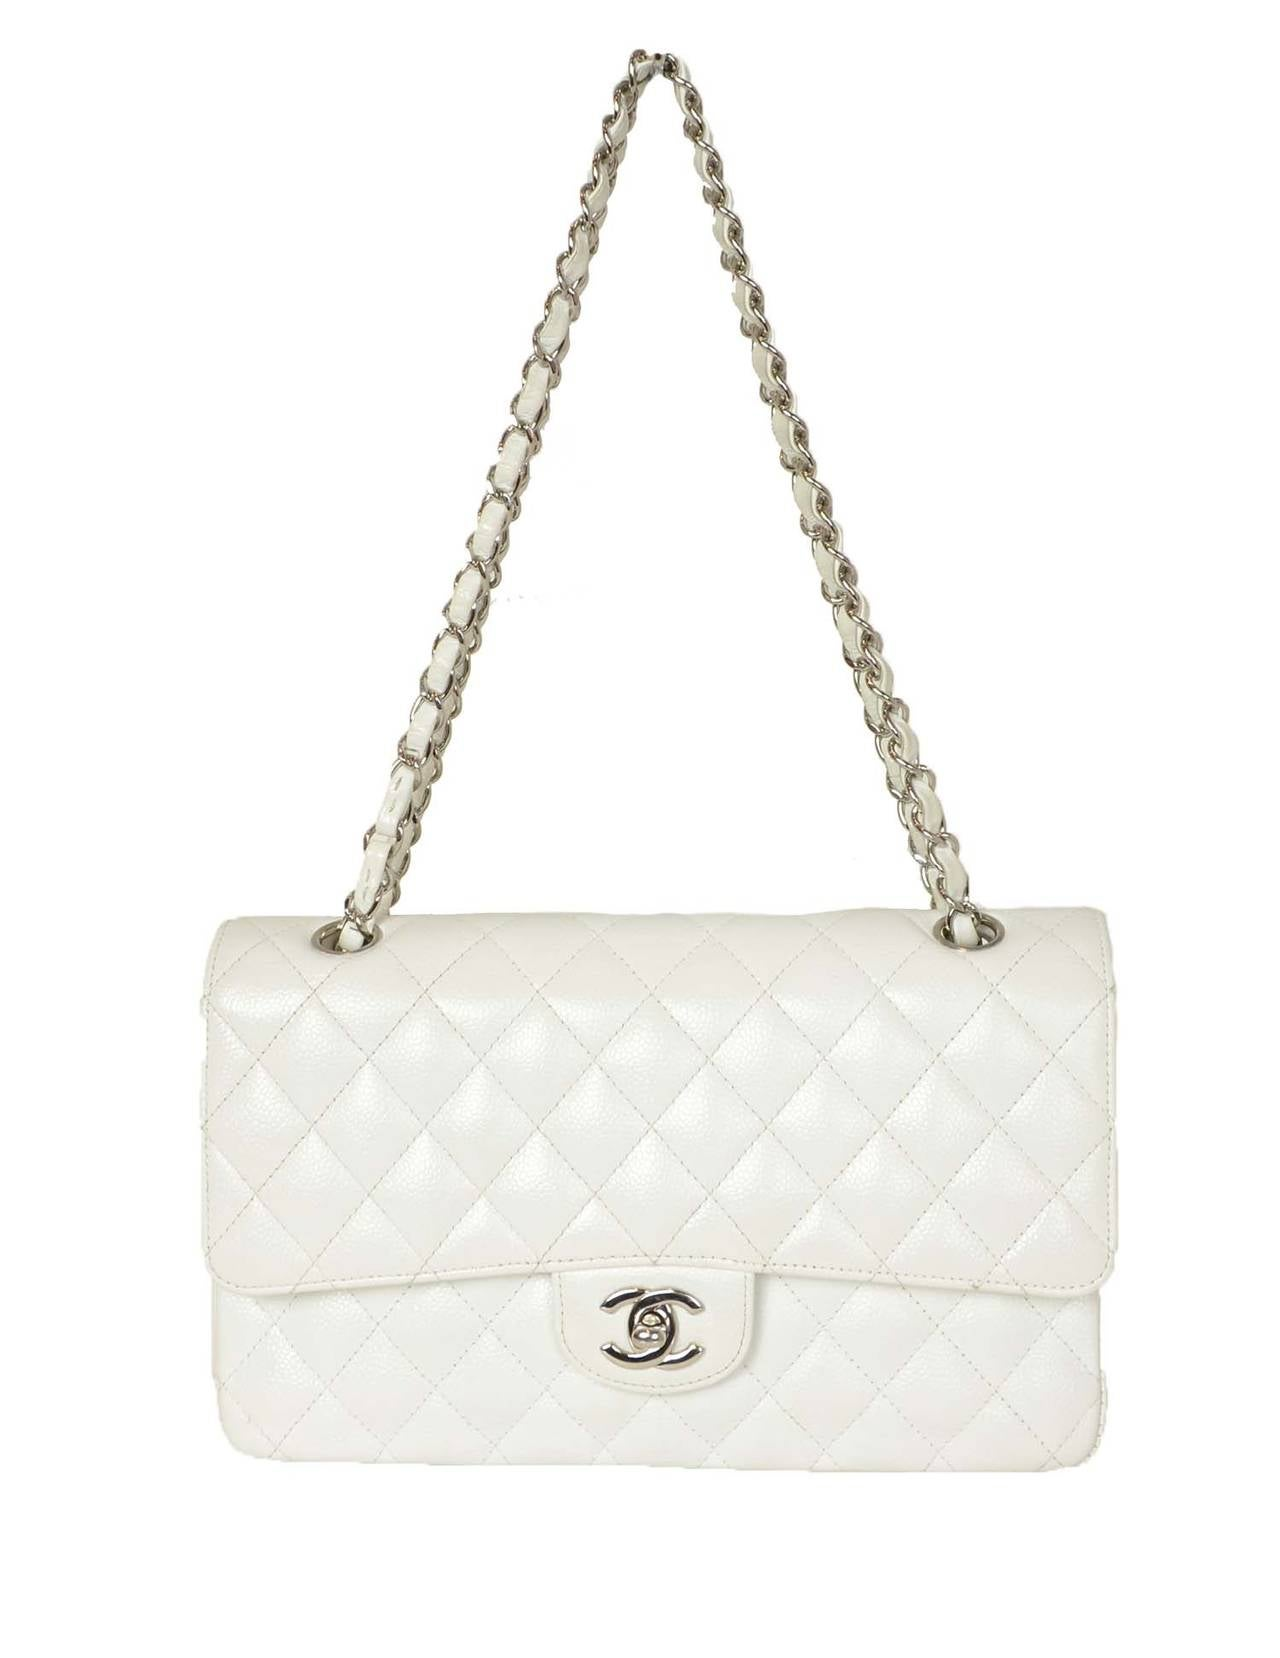 "CHANEL White Quilted Caviar Double Flap 10"" Classic Bag 2"